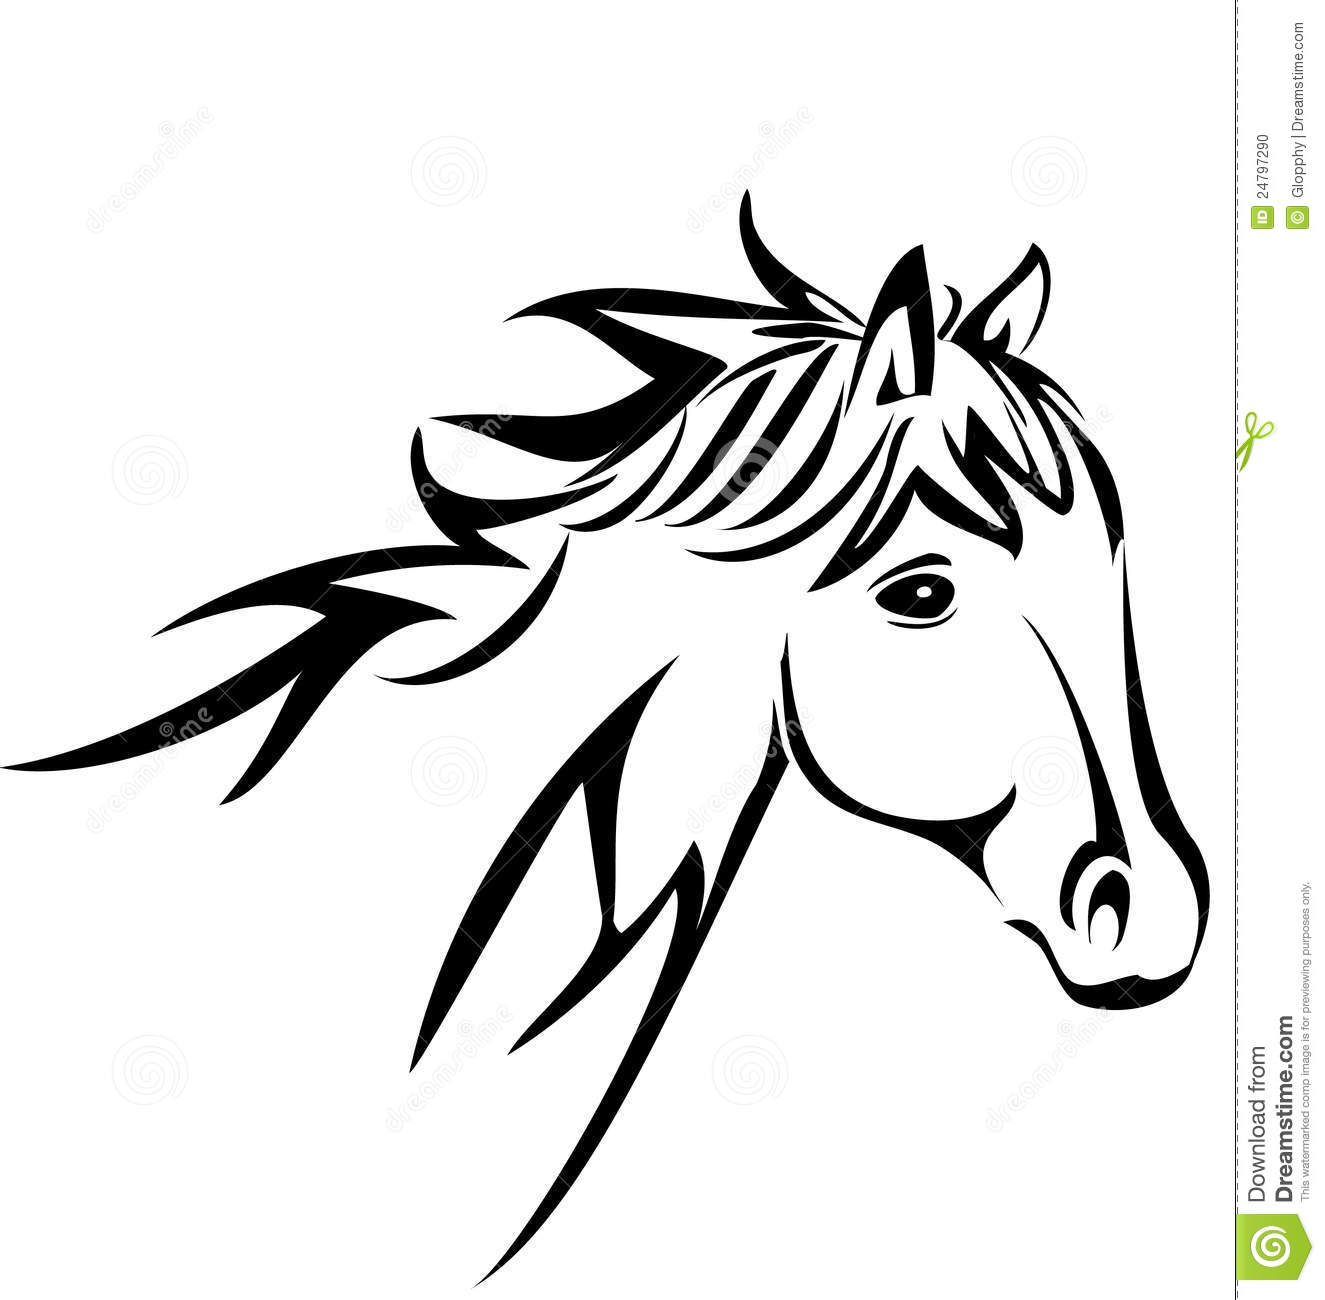 Arabian horse head clipart - photo#16